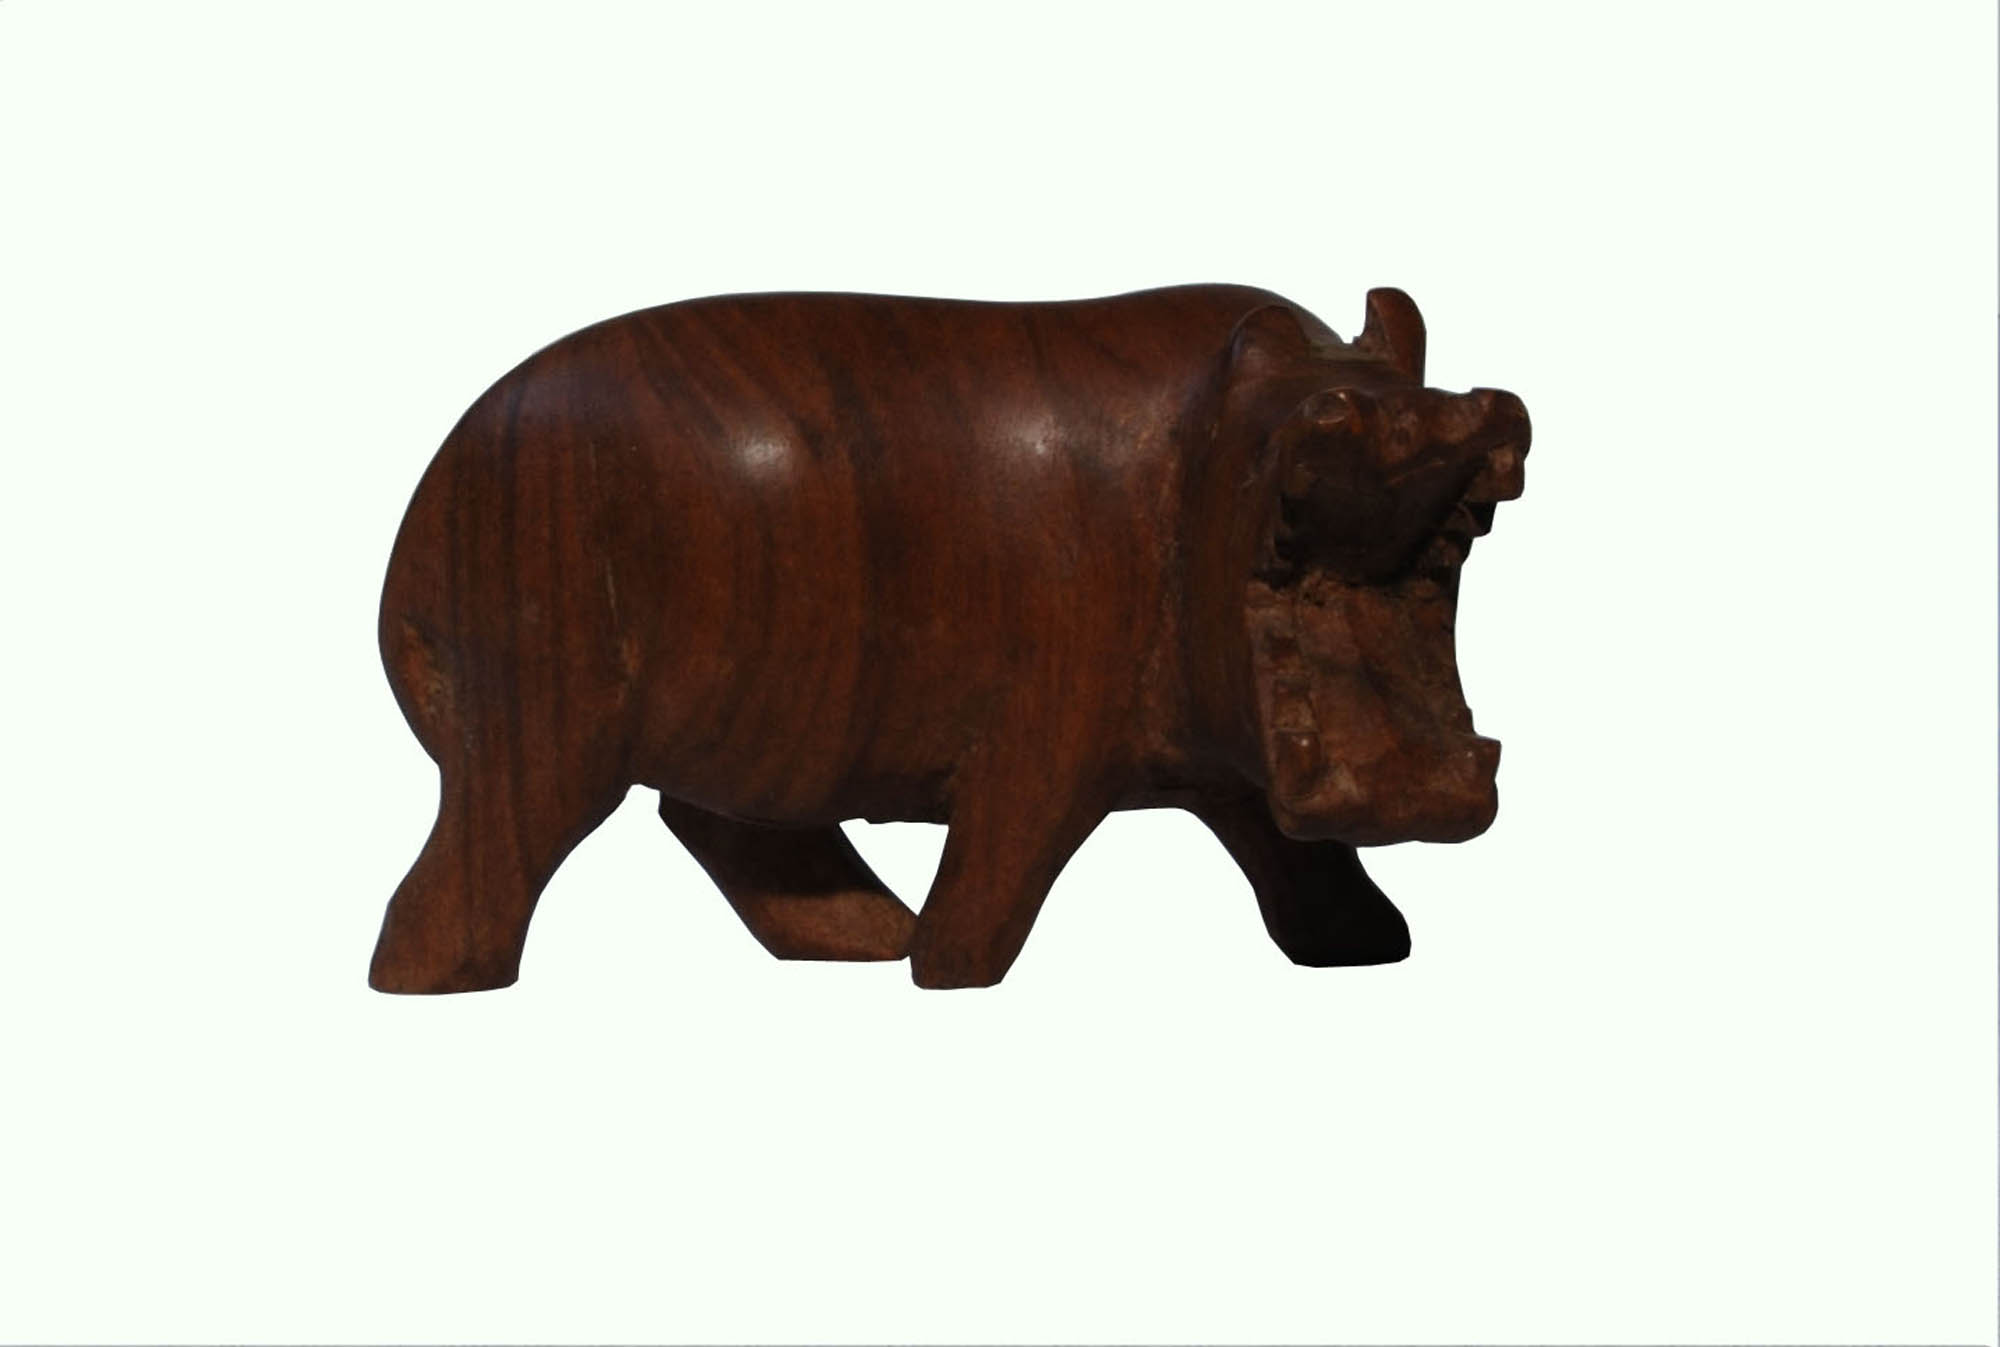 Wooden hippopotamus carving